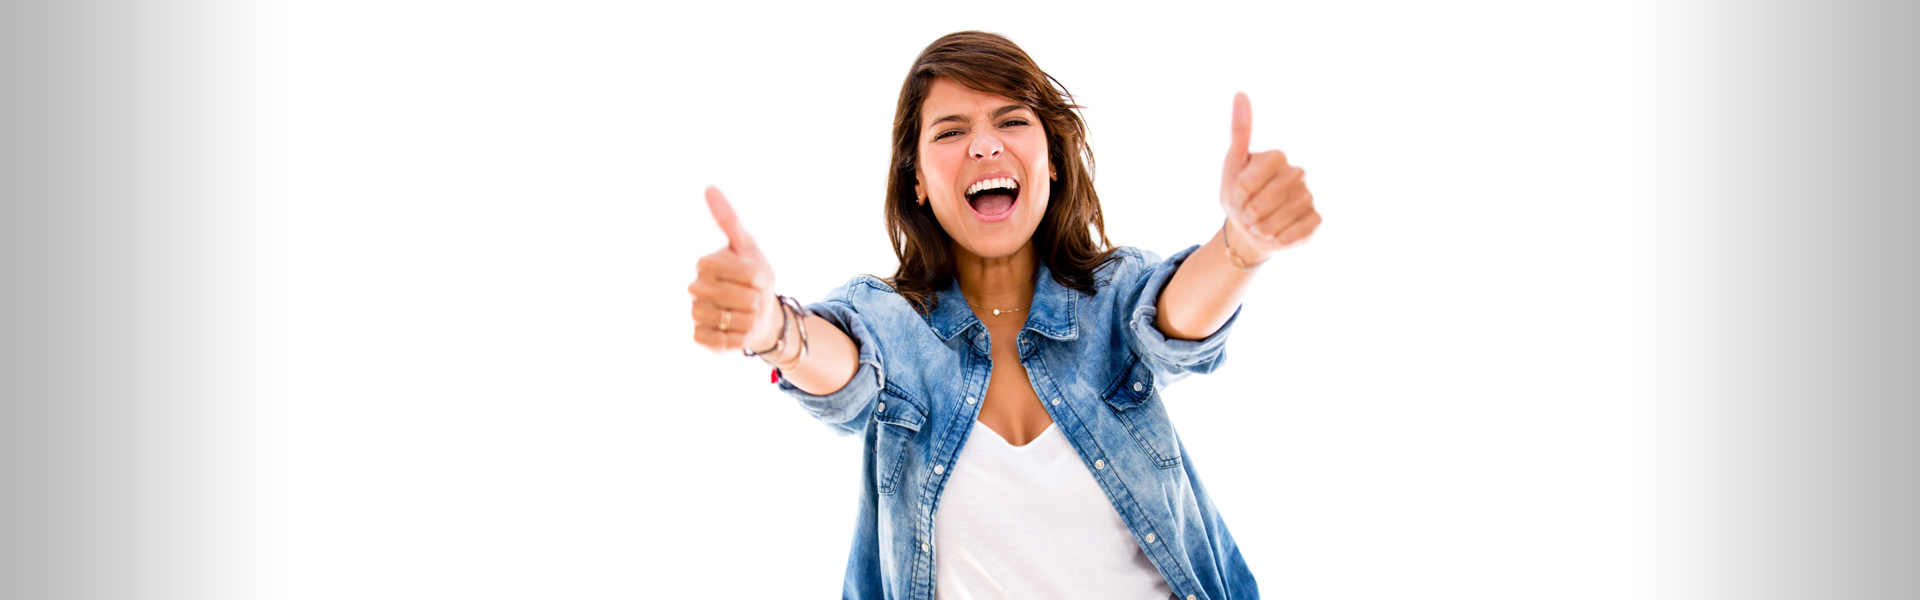 Female Giving Two Thumbs Up